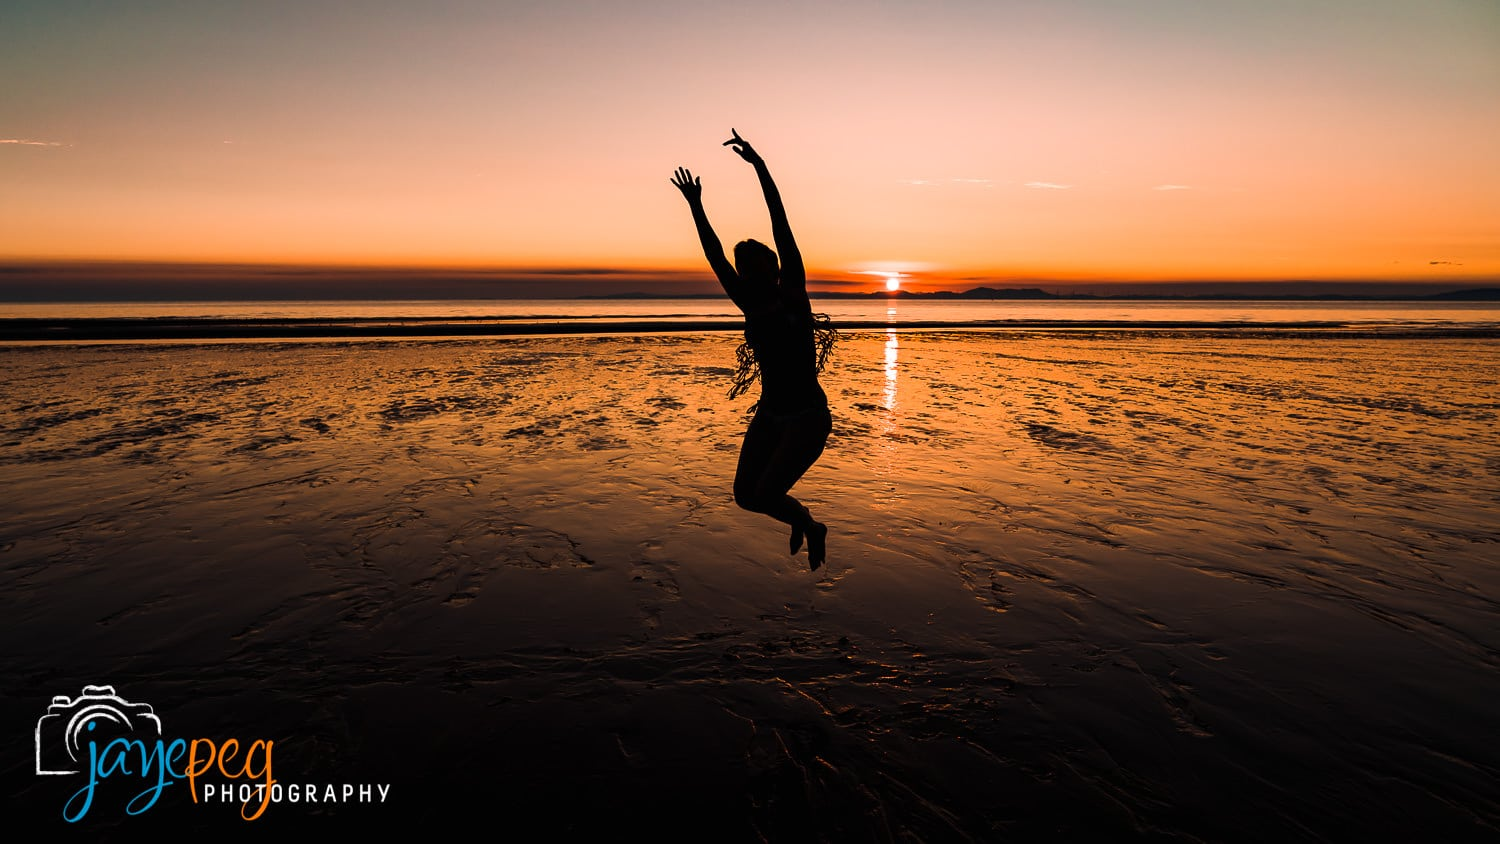 a photograph of a dancer in silhouette jumping on the beach at sunset in cumbria